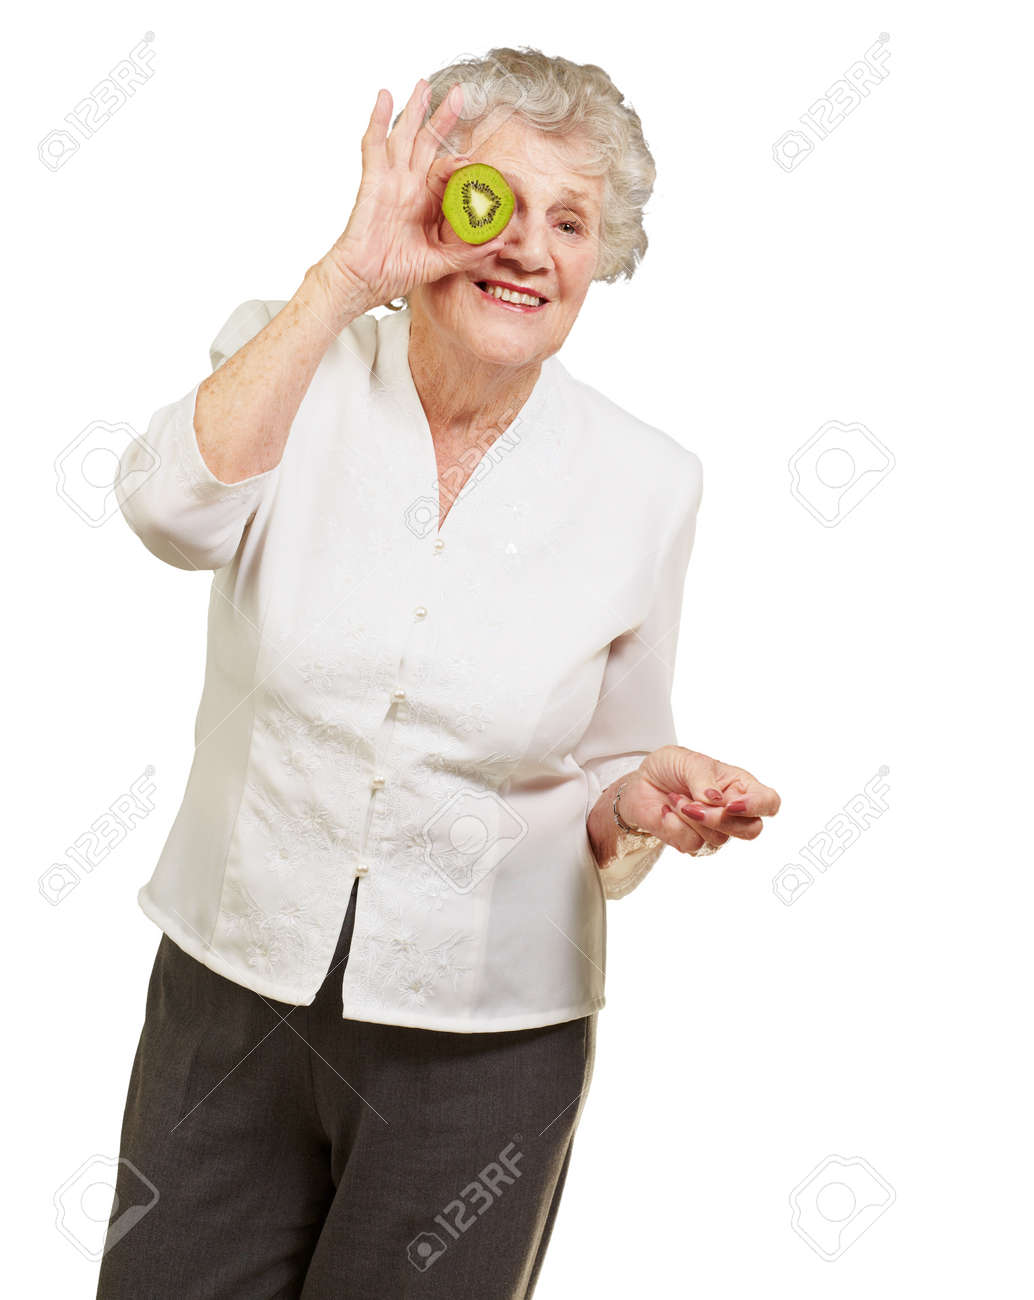 portrait of senior woman holding kiwi in front of her eye over white background Stock Photo - 13608632